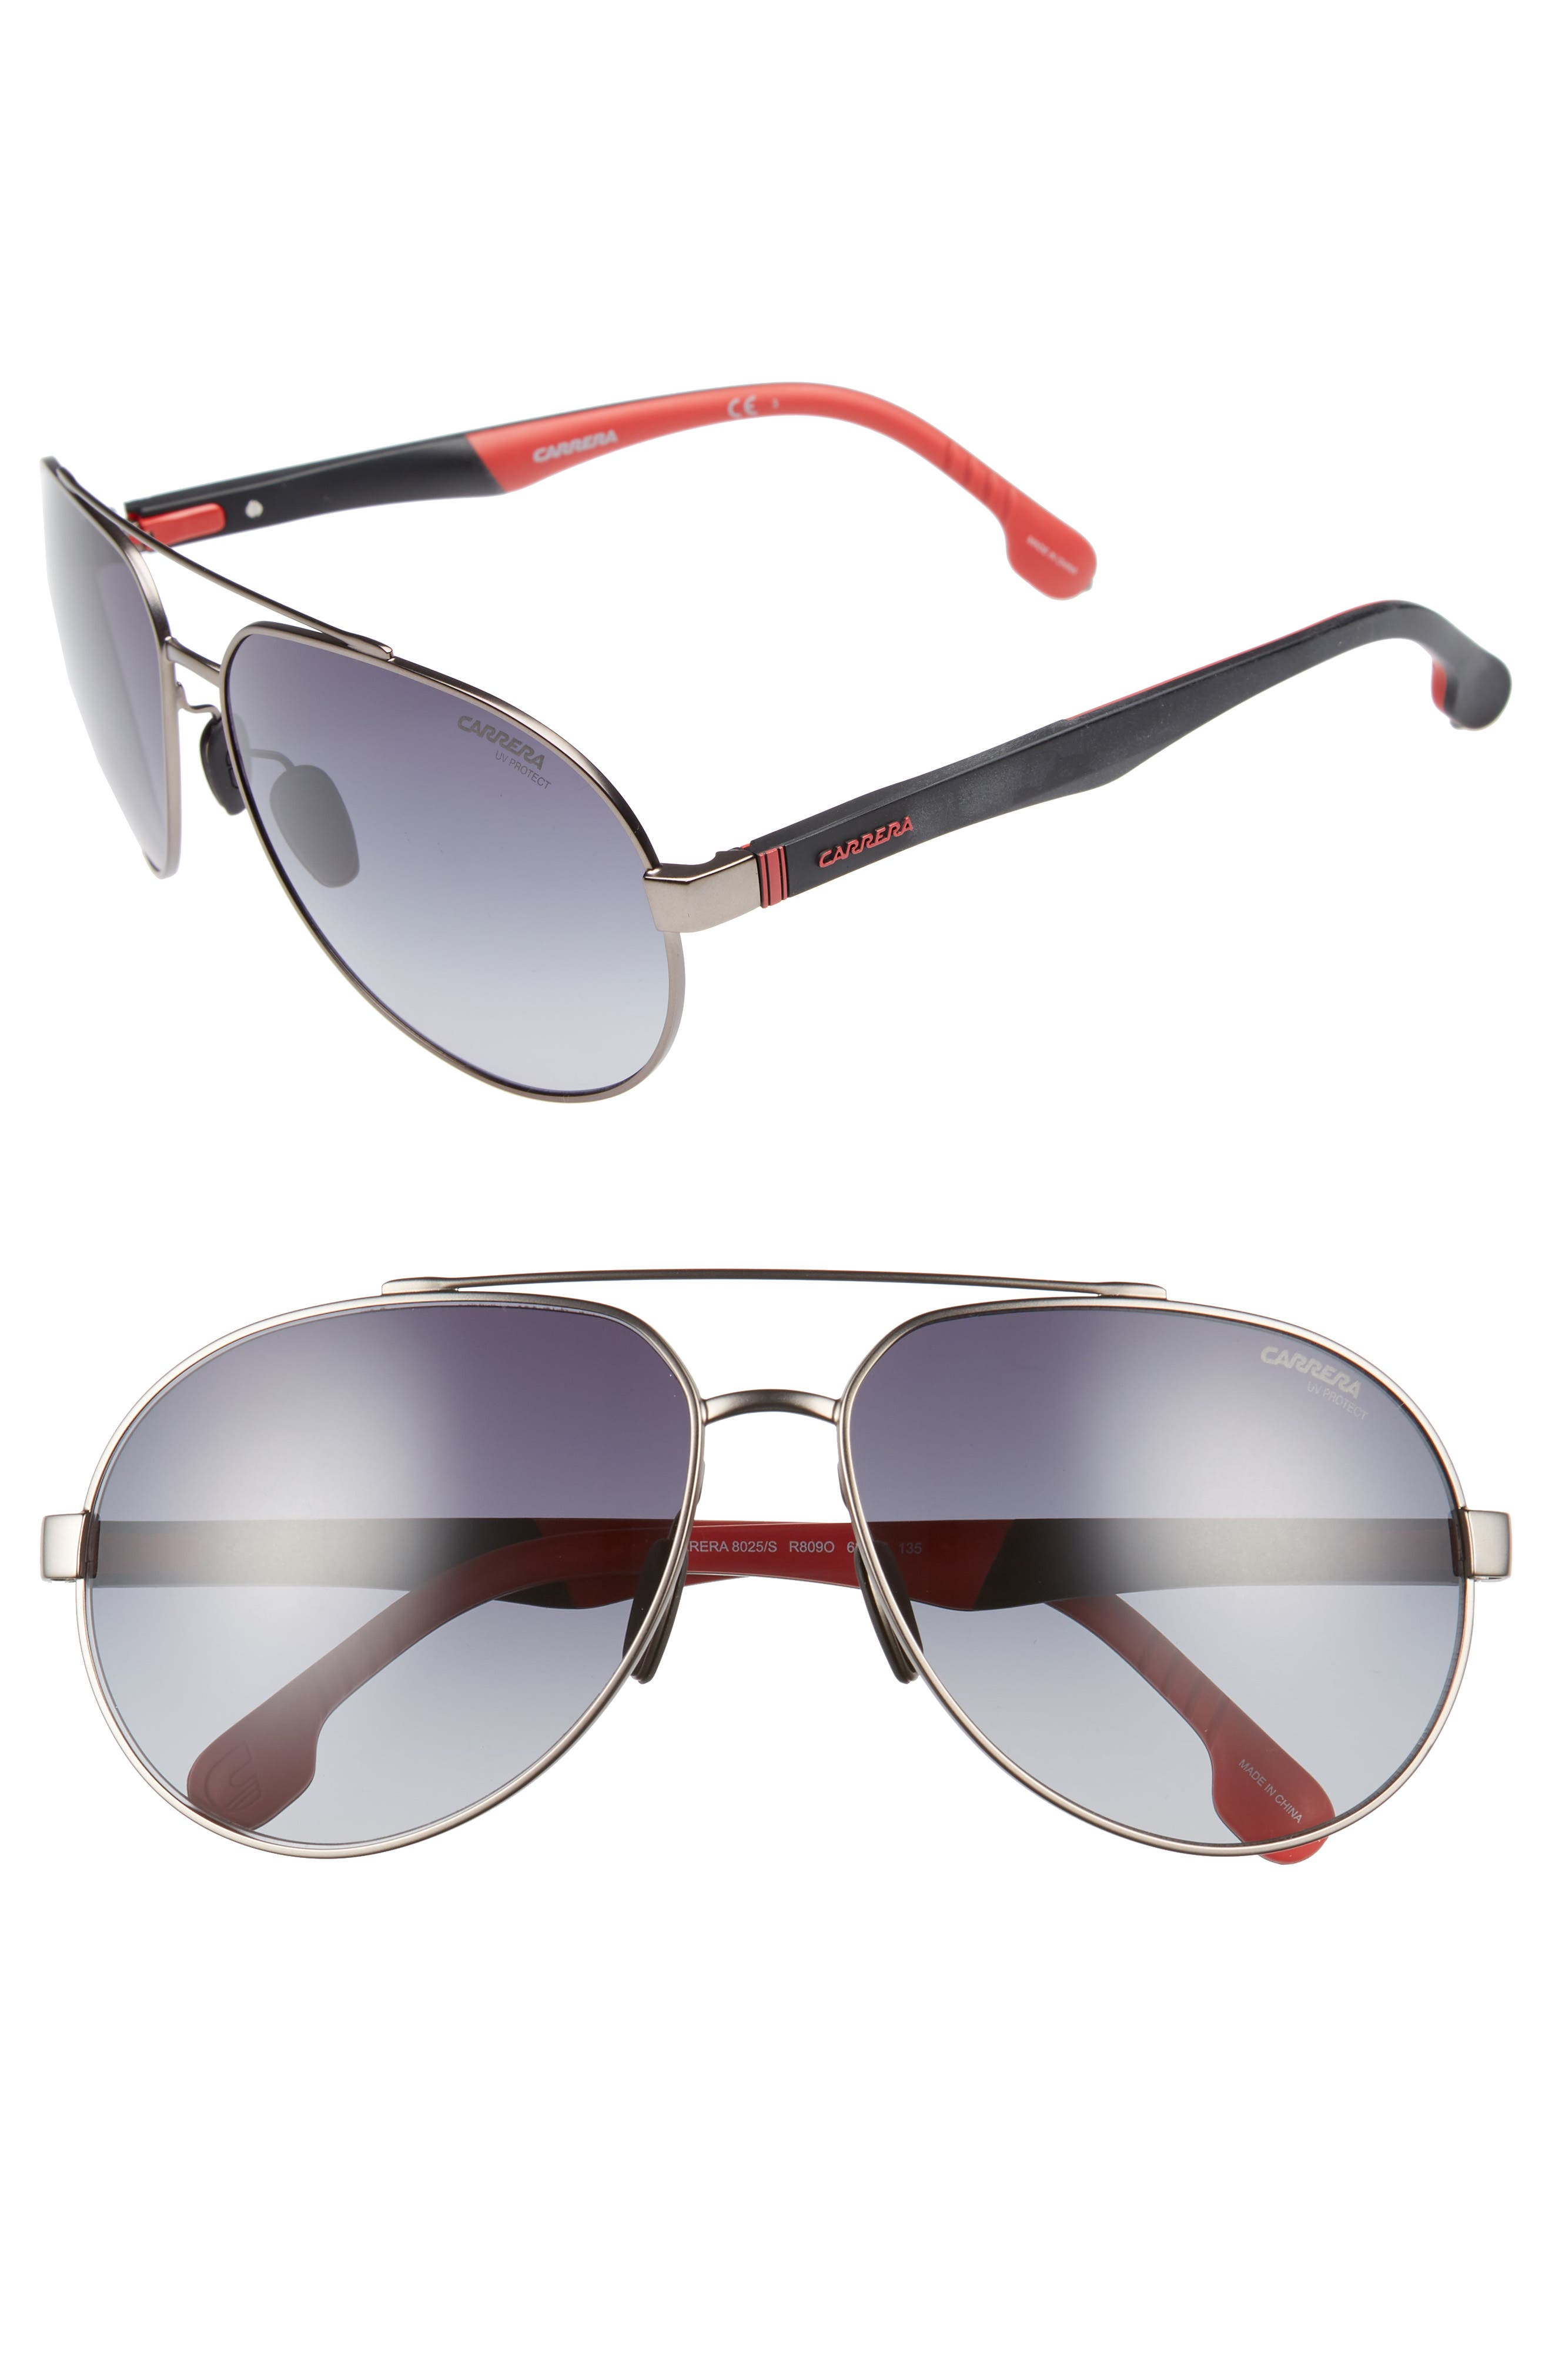 Carrera Eyewear 63mm Polarized Aviator Sunglasses